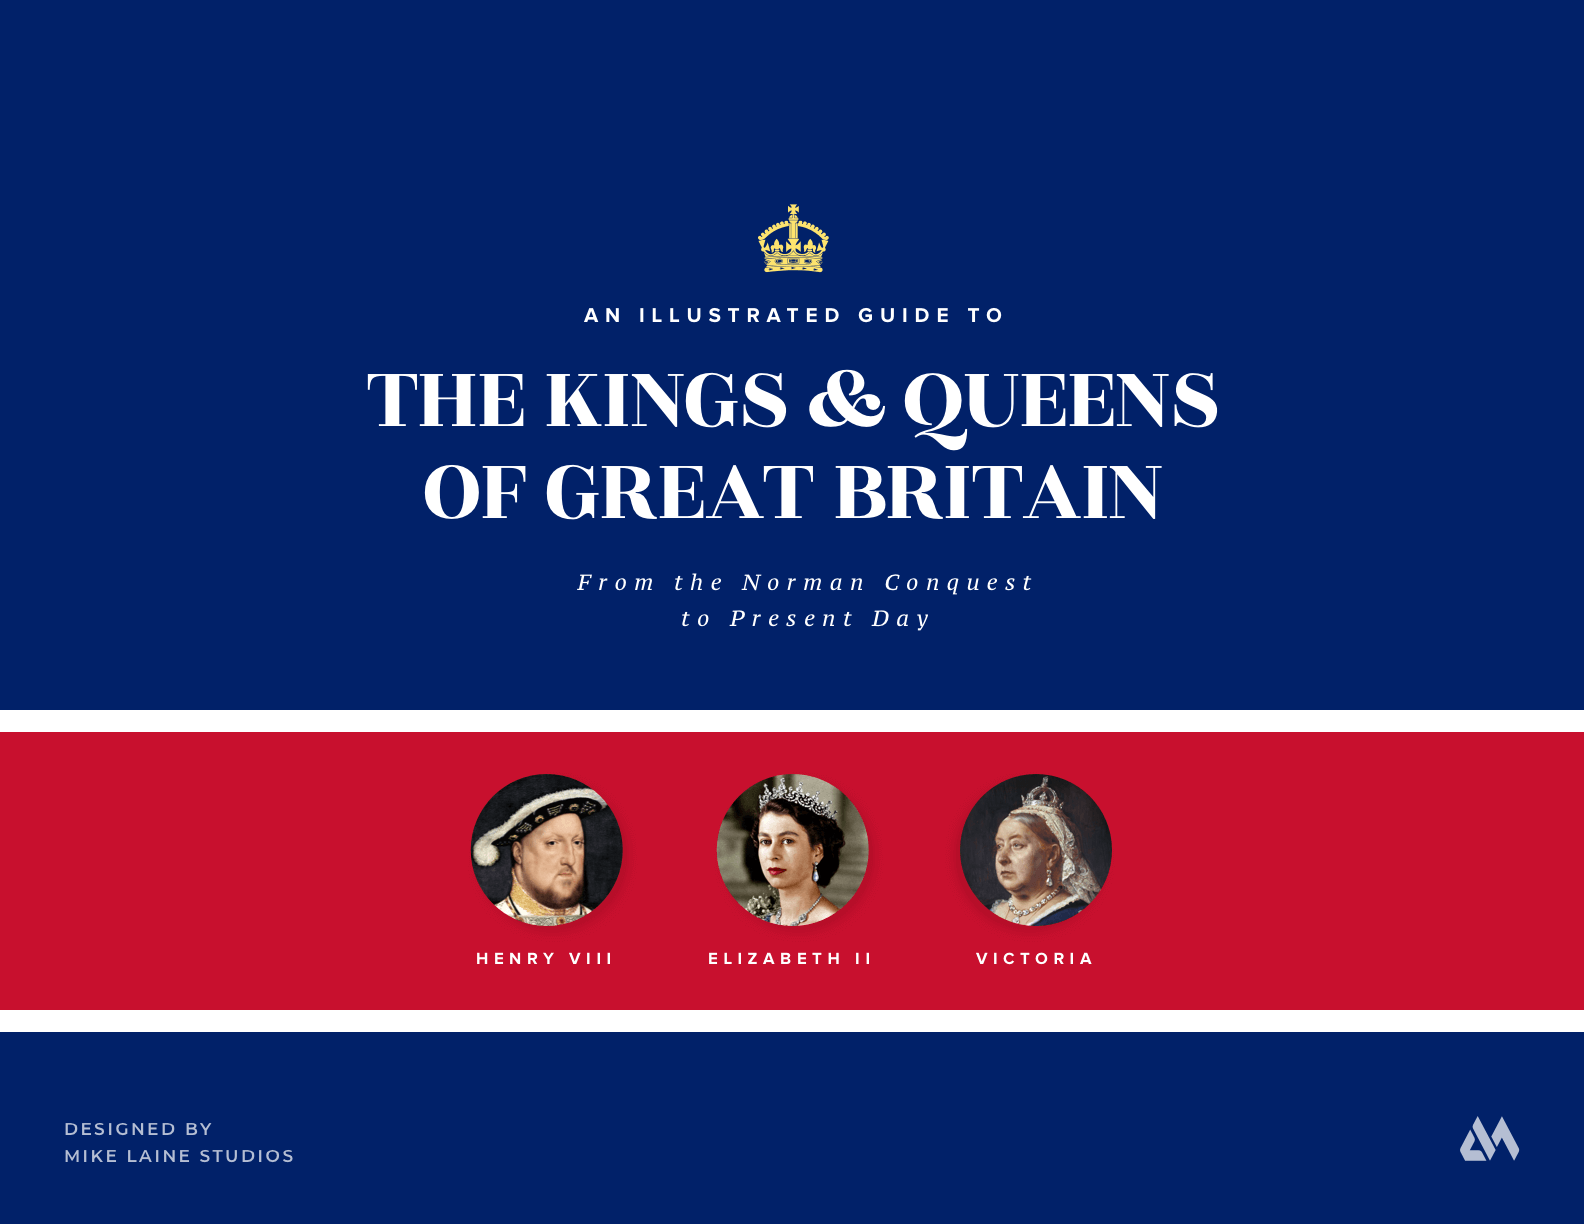 The Kings & Queens of Great Britain